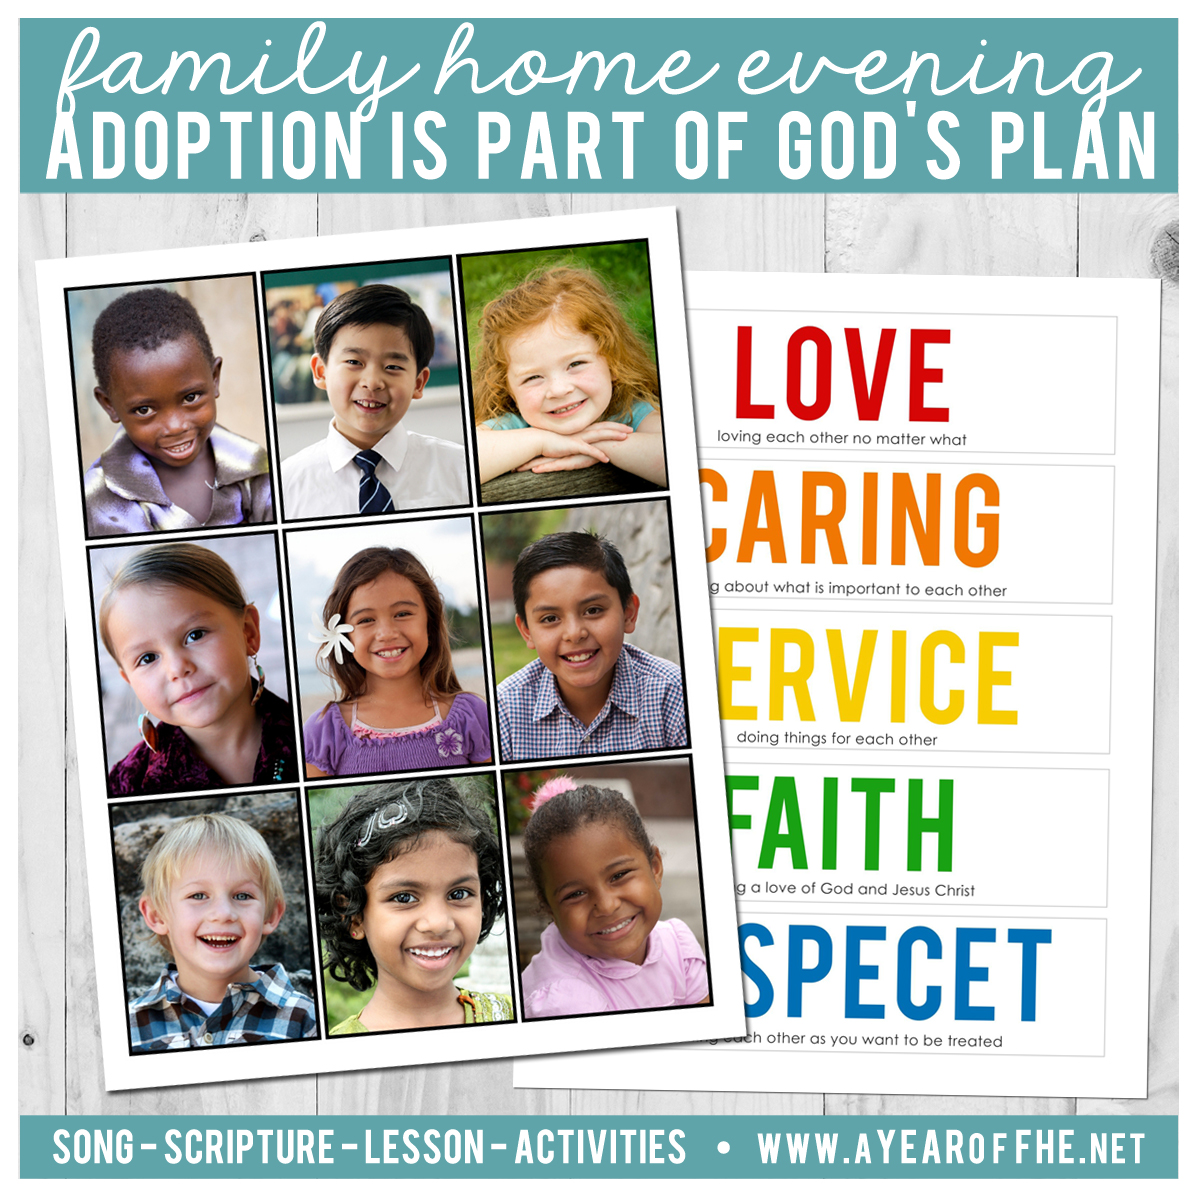 Lds Quotes On Family Home Evening: A Year Of FHE: Year 03 / Lesson 33: Adoption Is Part Of